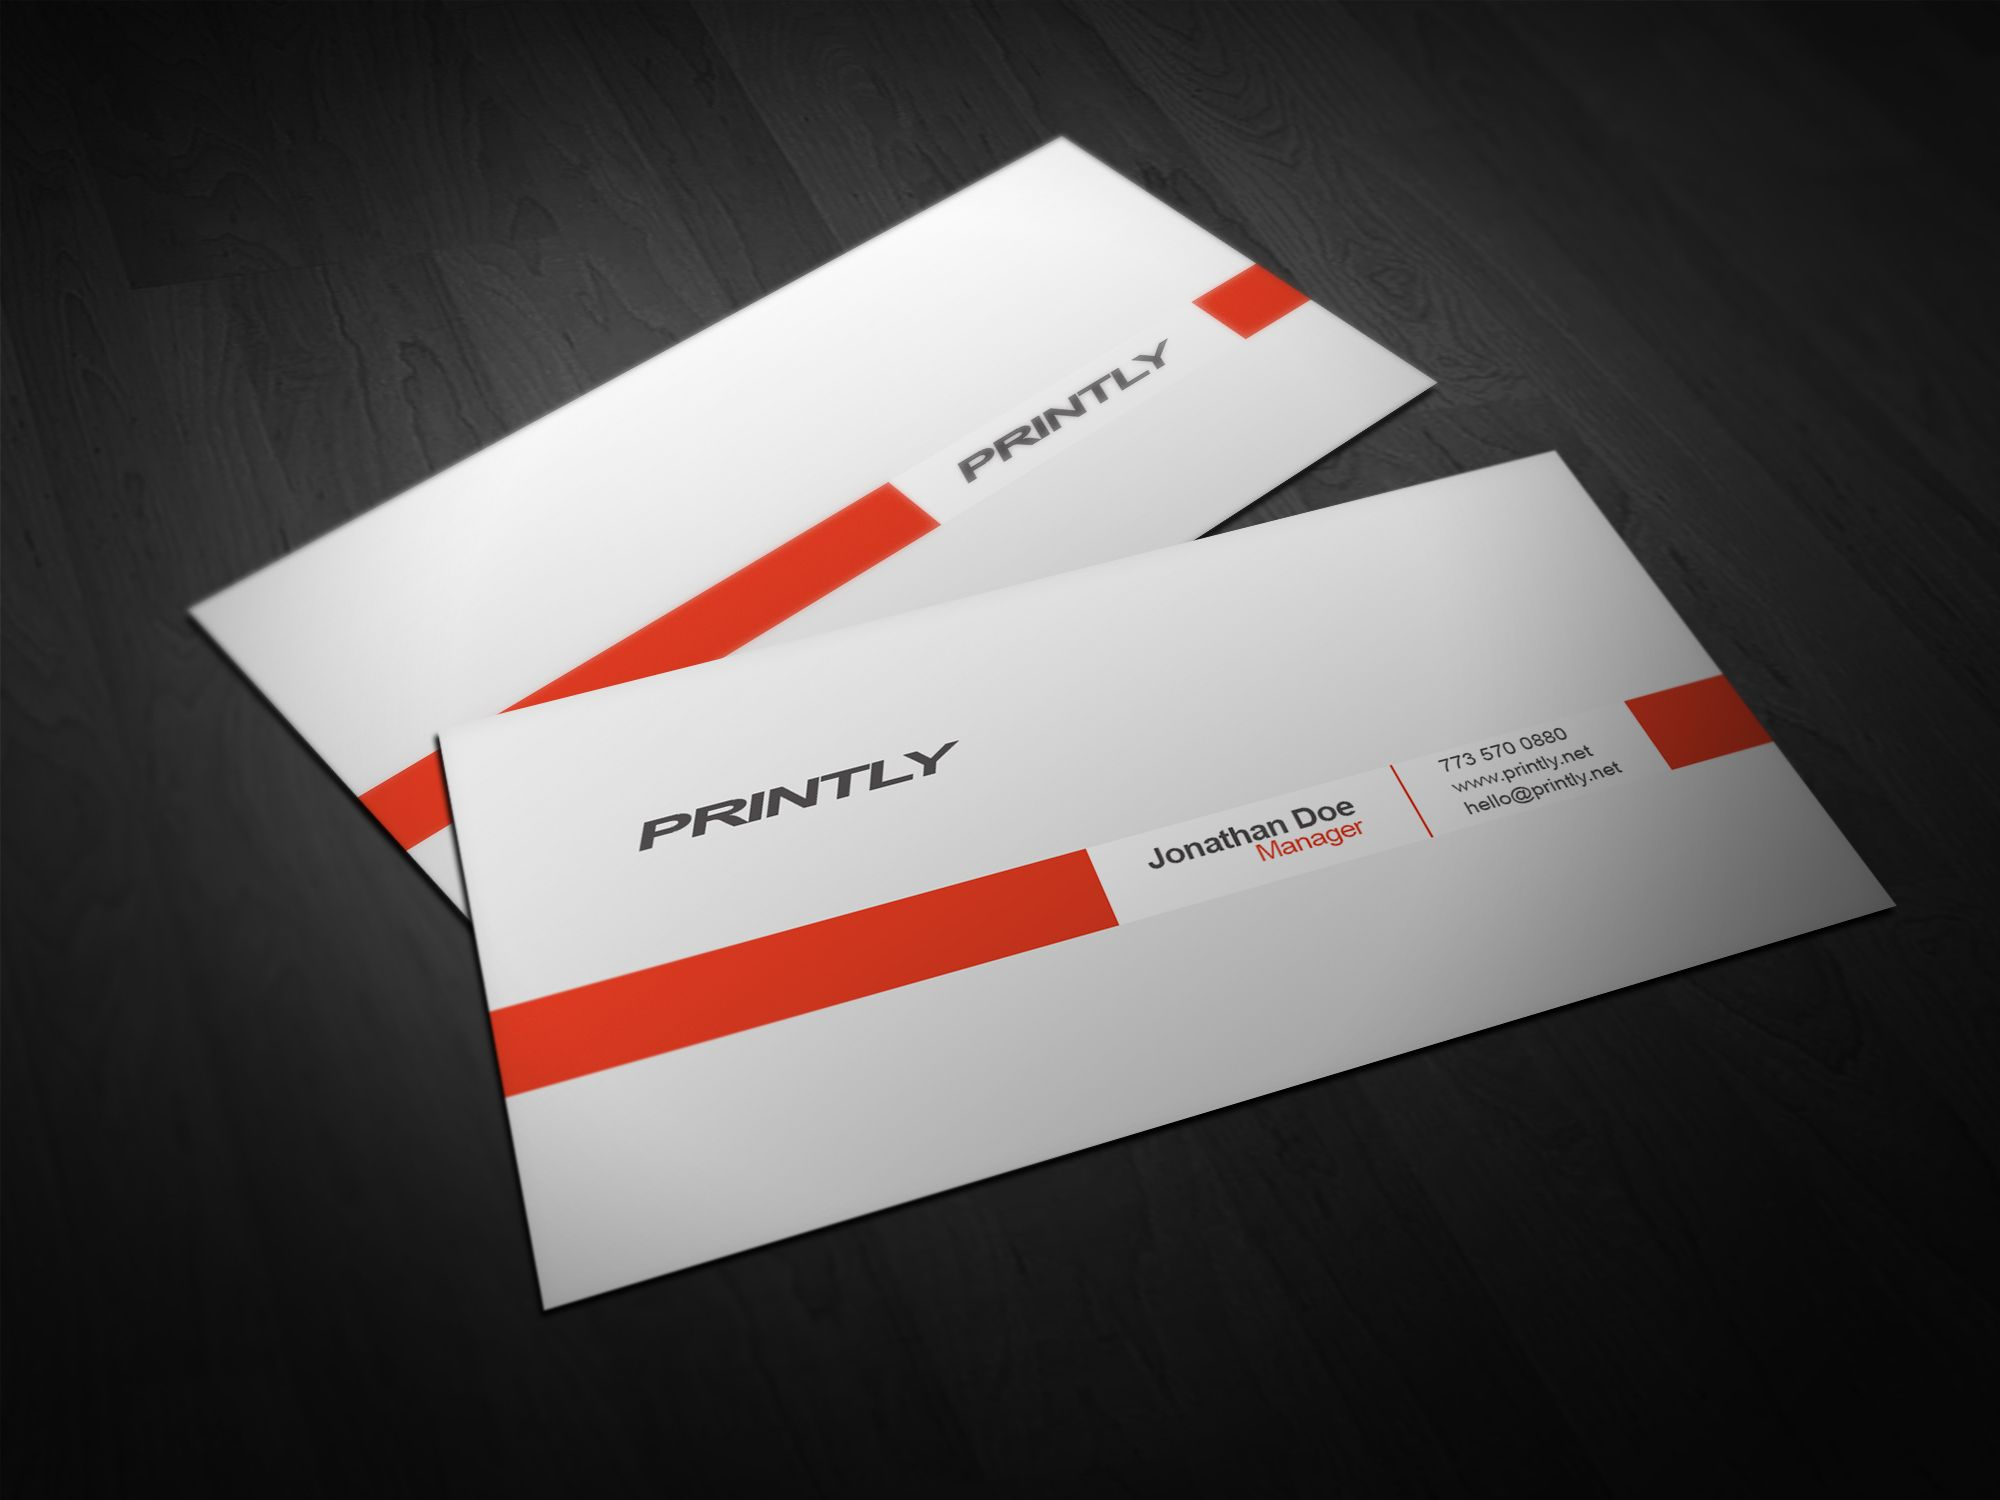 Free printly psd business card template printly design free printable business cards templates by printly flashek Gallery